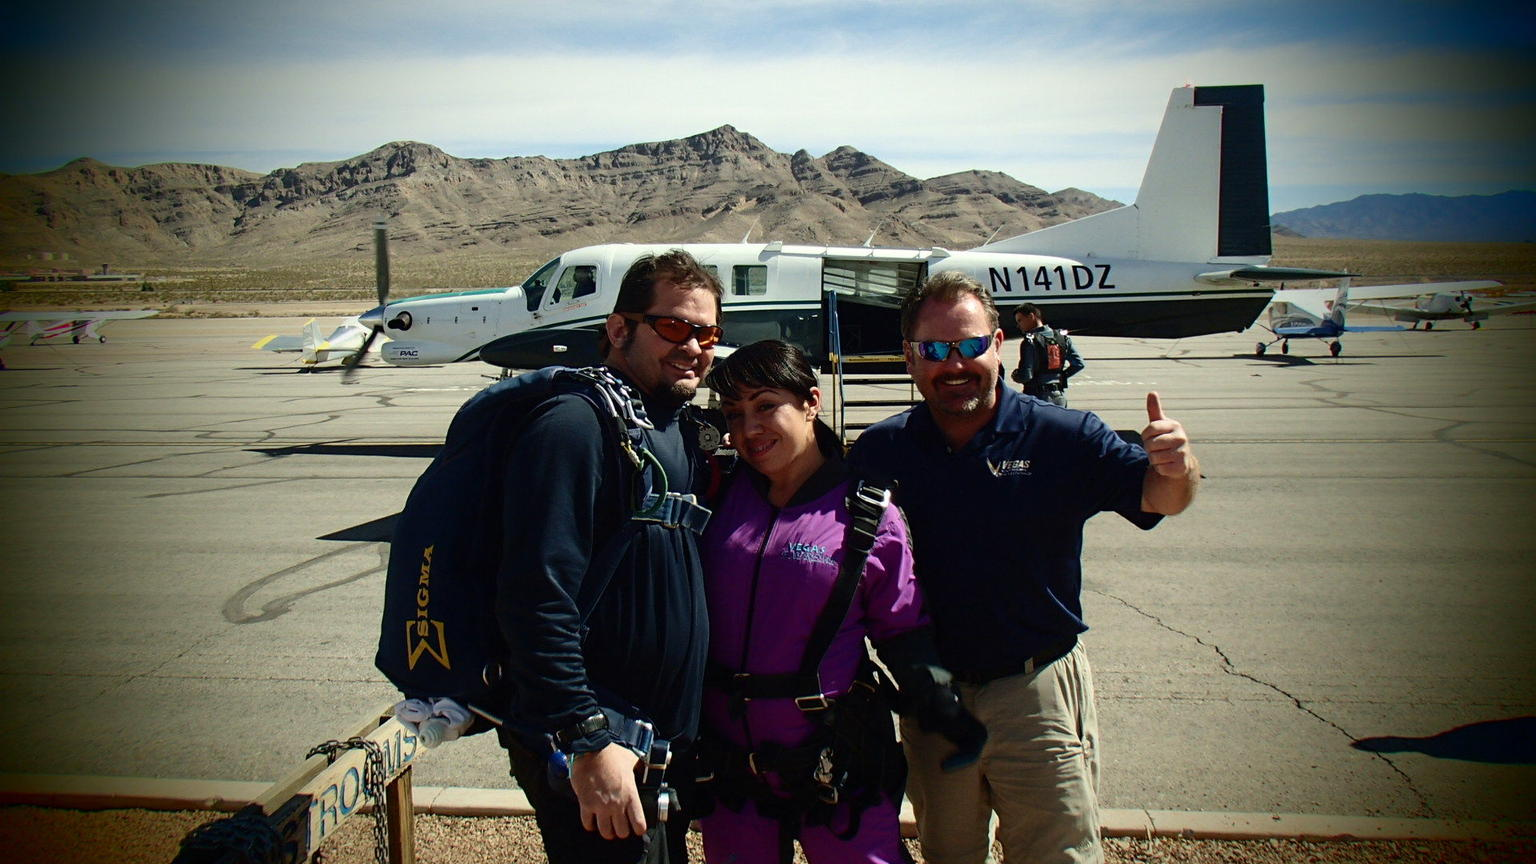 Las Vegas Skydiving